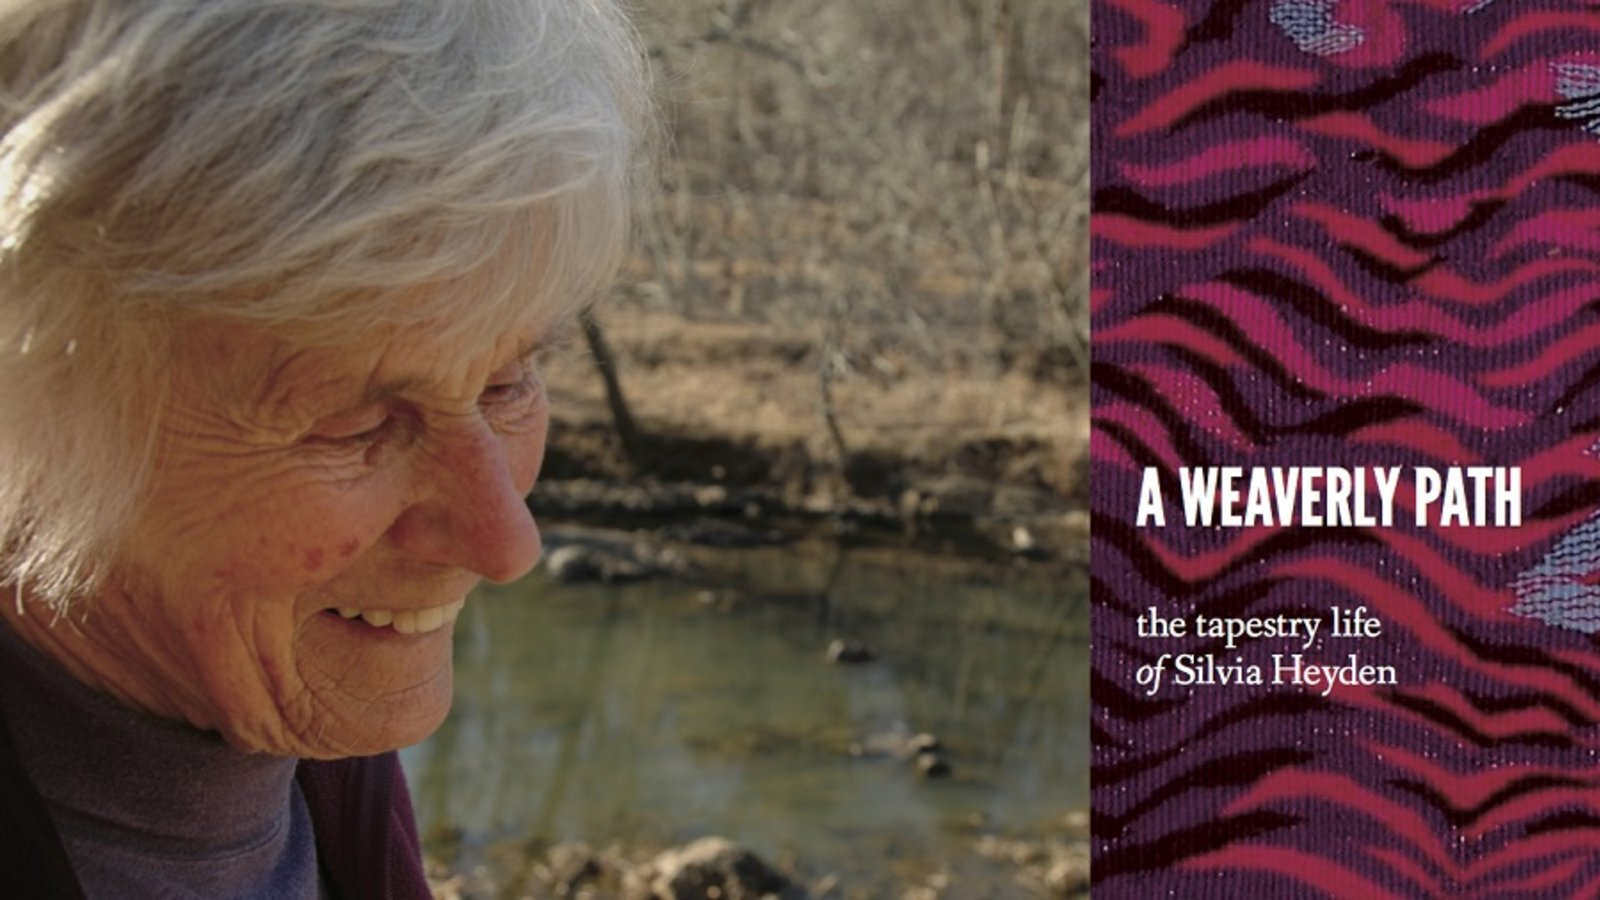 A Weaverly Path - The Tapestry Weaving of Silvia Heyden